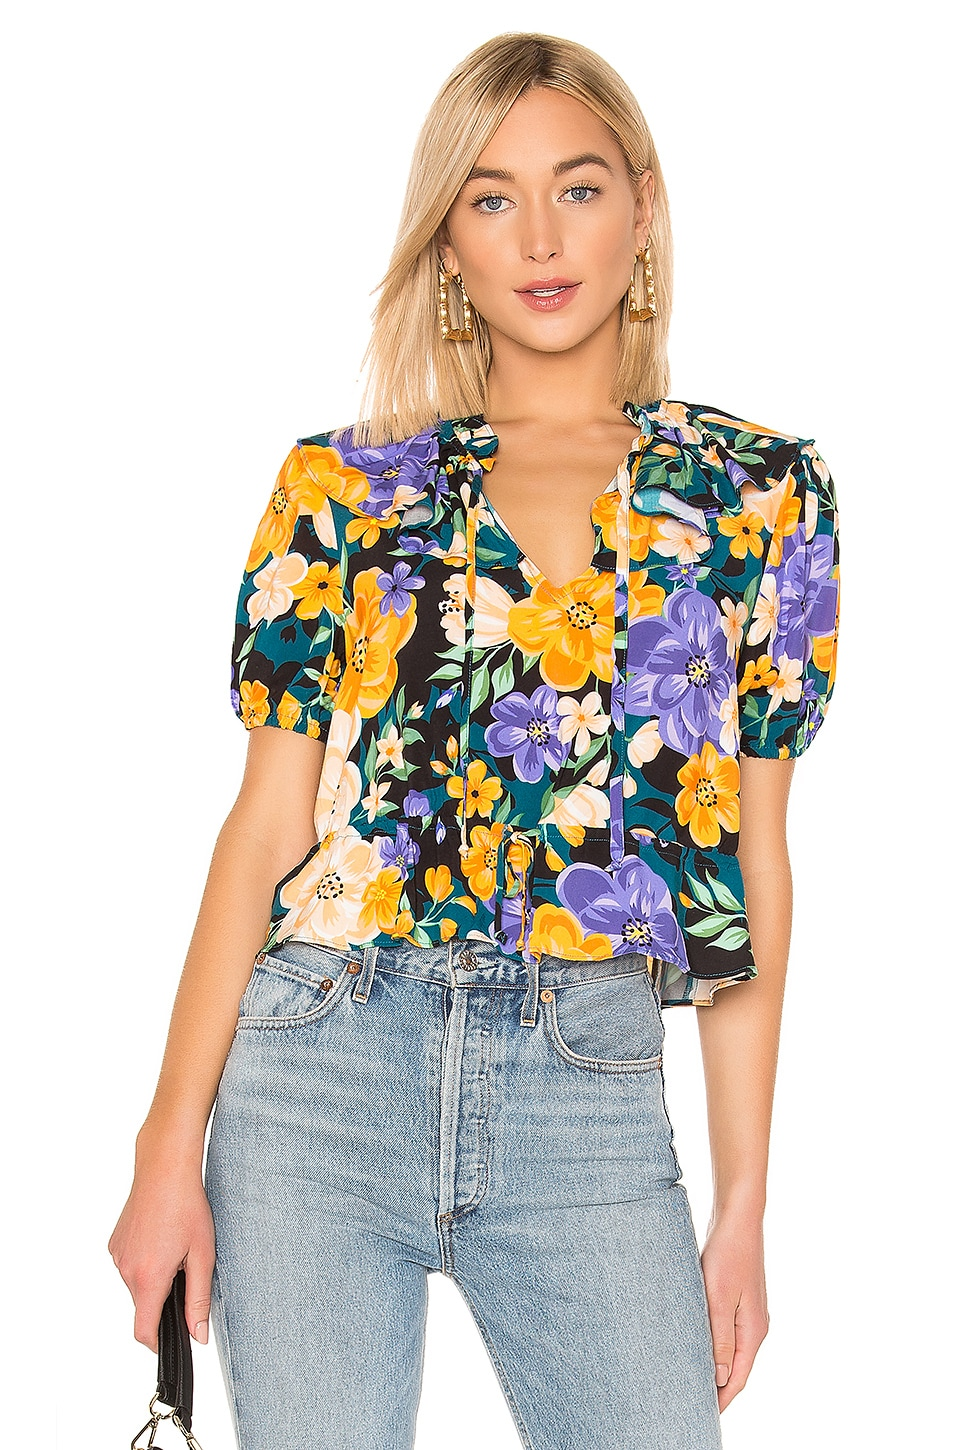 Tularosa Beatrice Blouse in Lavender Floral